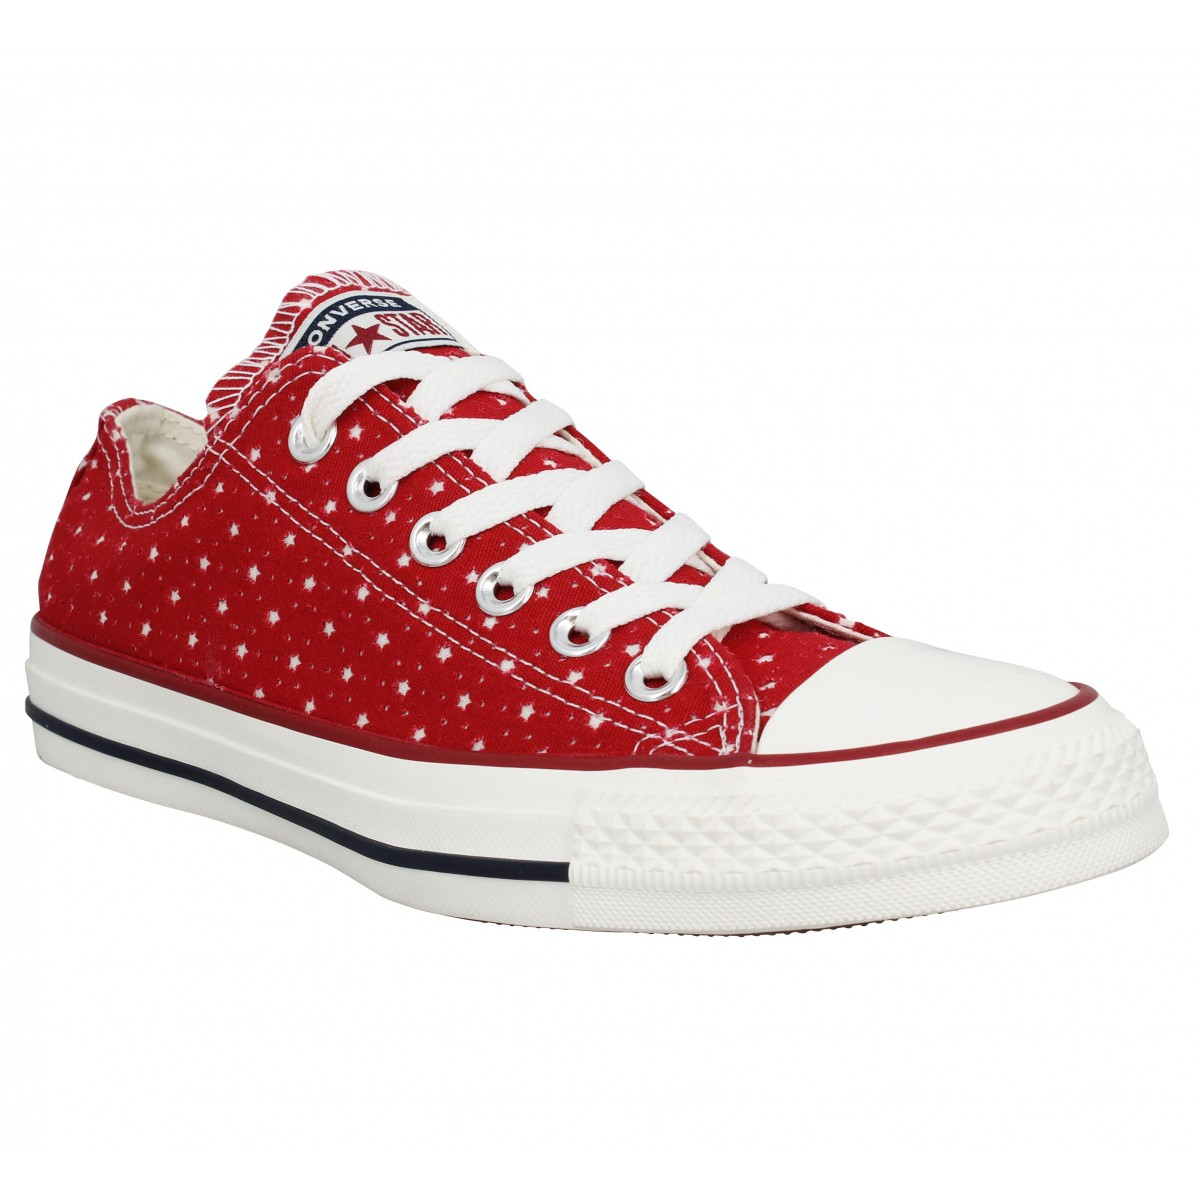 converse chuck taylor rouge femme